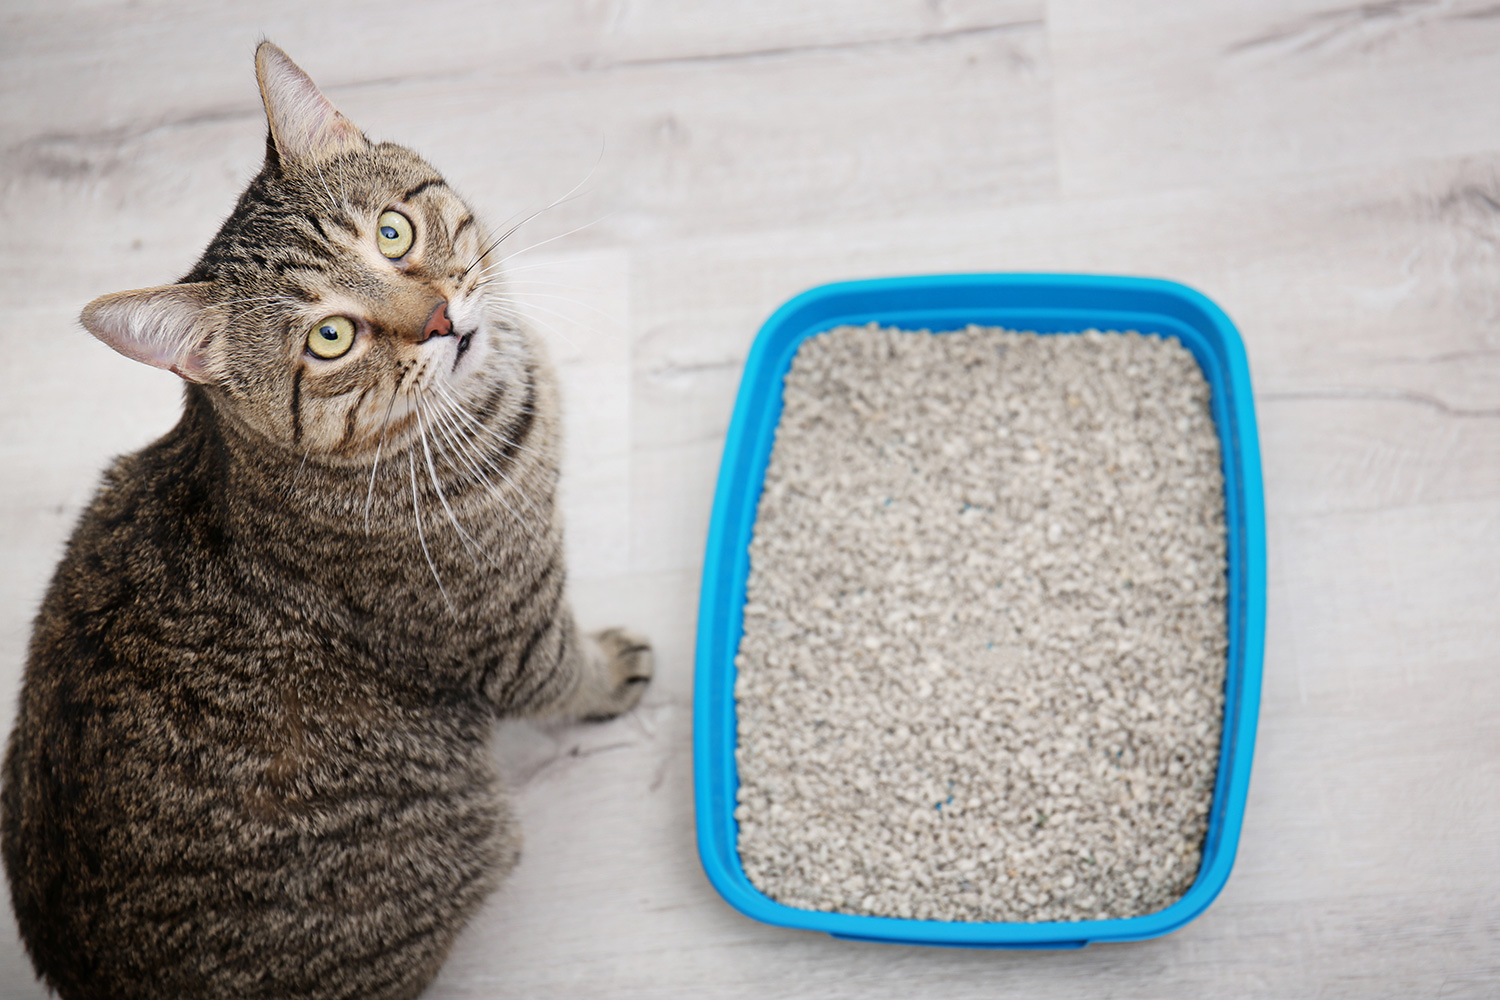 This Cat Litter Has Nearly 13,000 Five-Star Reviews on Amazon Because It Keeps Even the Smallest Apartments Odor-Free